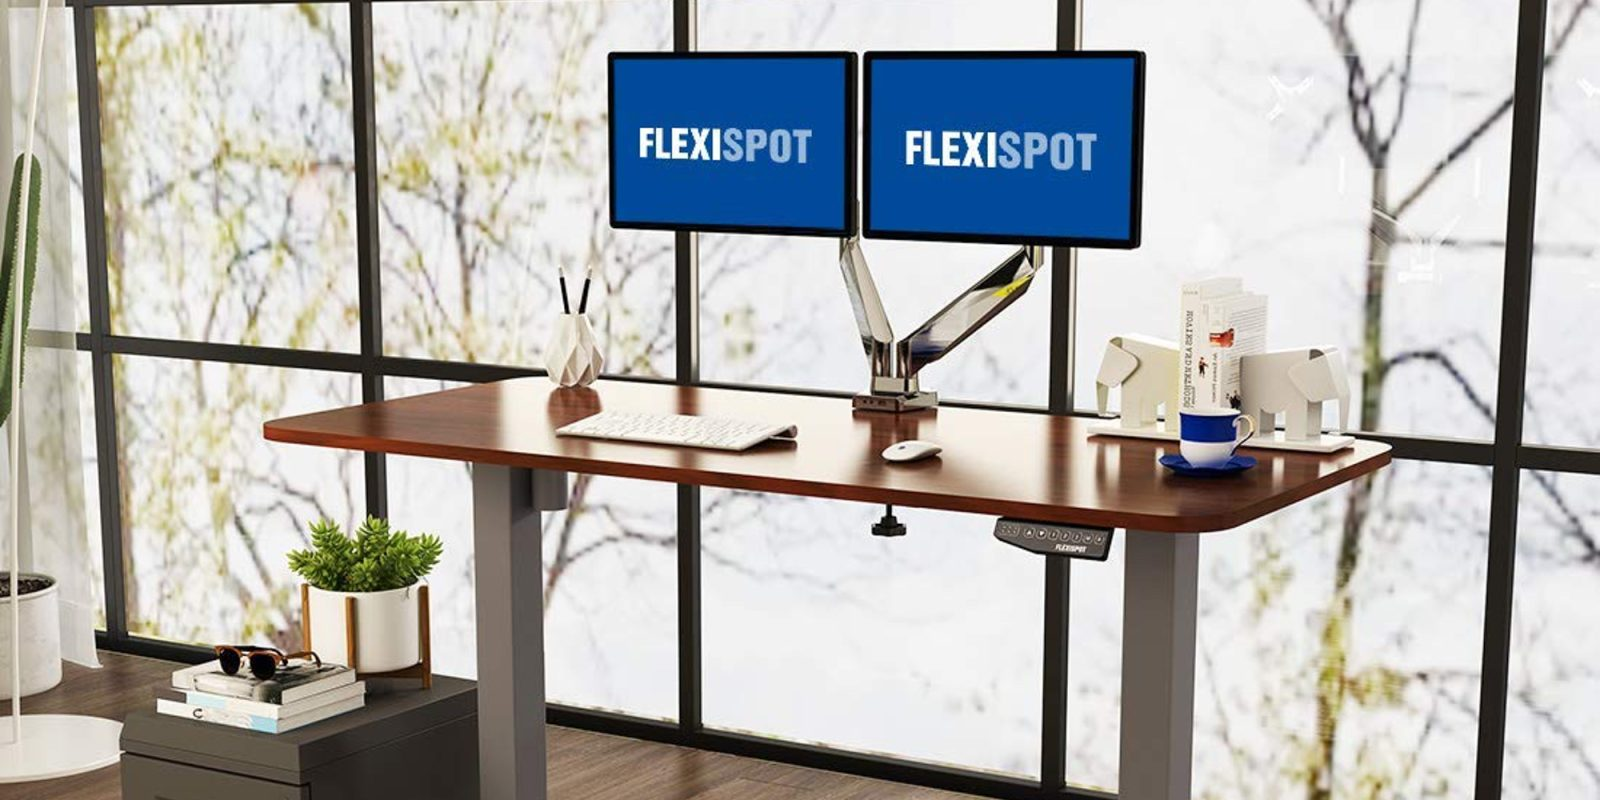 FlexiSpot's highly-rated Standing Desk and accessories are up to 30% off, with deals from $56